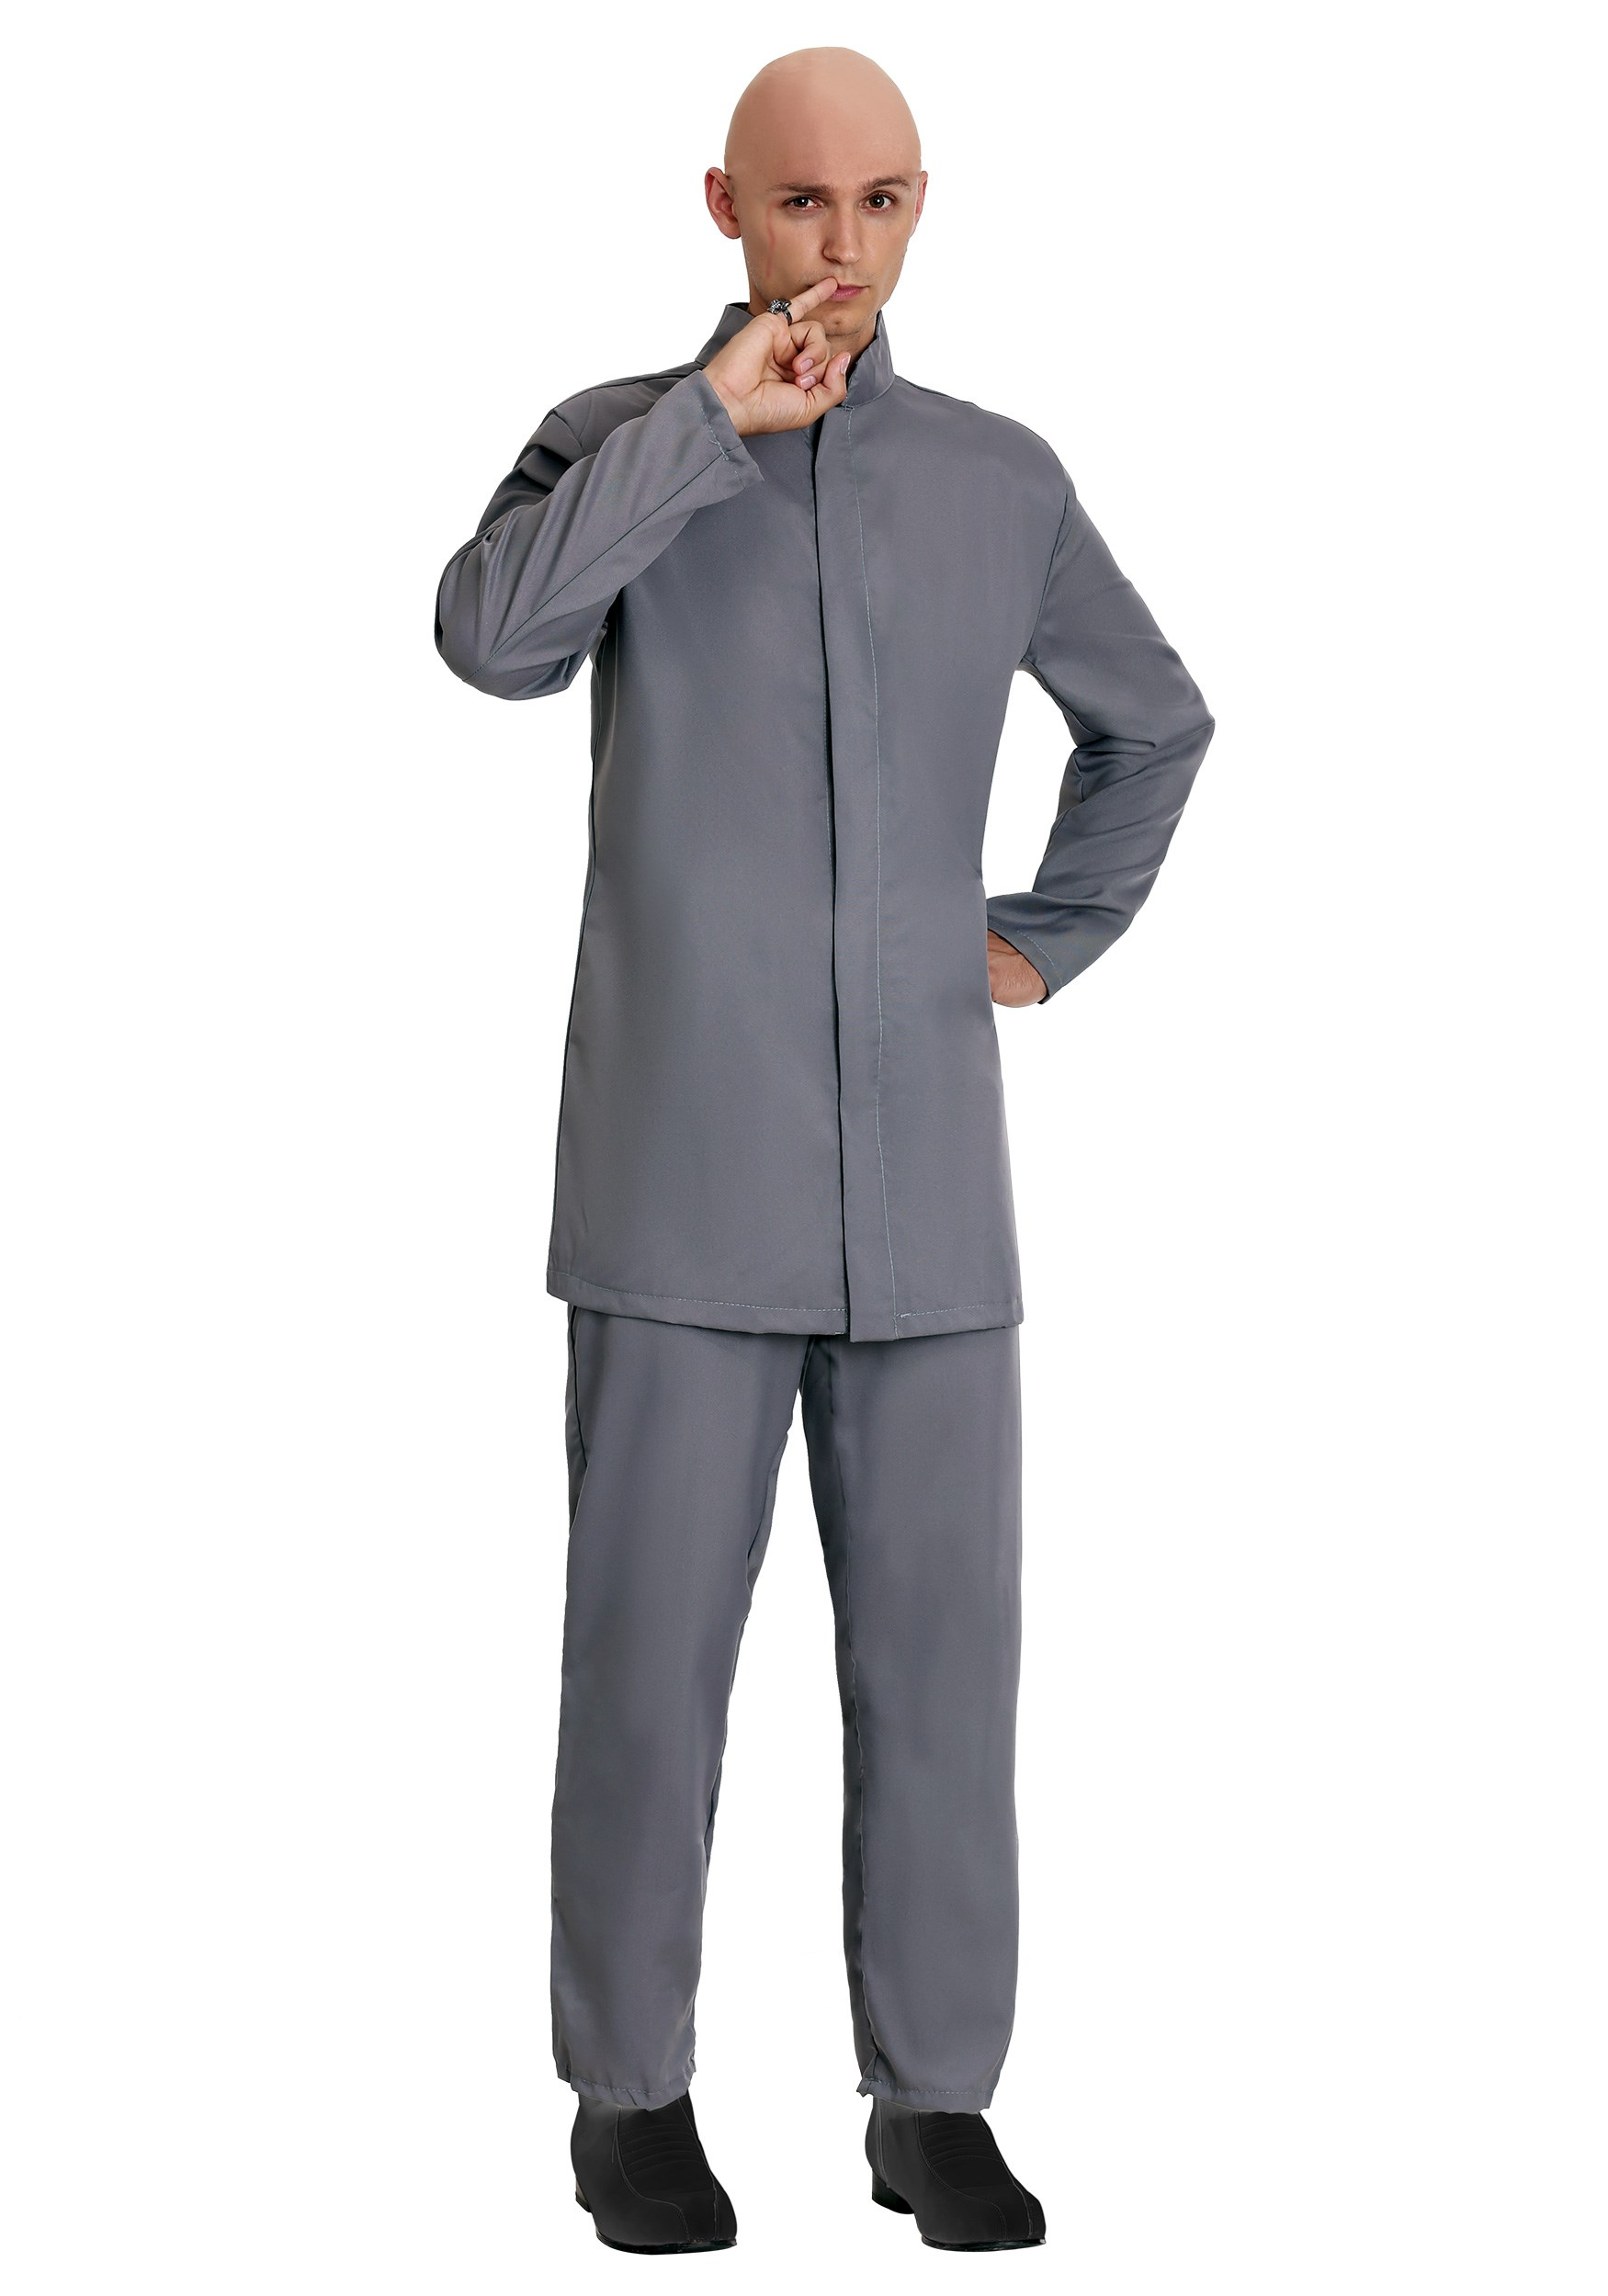 Deluxe Adult Gray Suit Costume | Austin Powers Costume